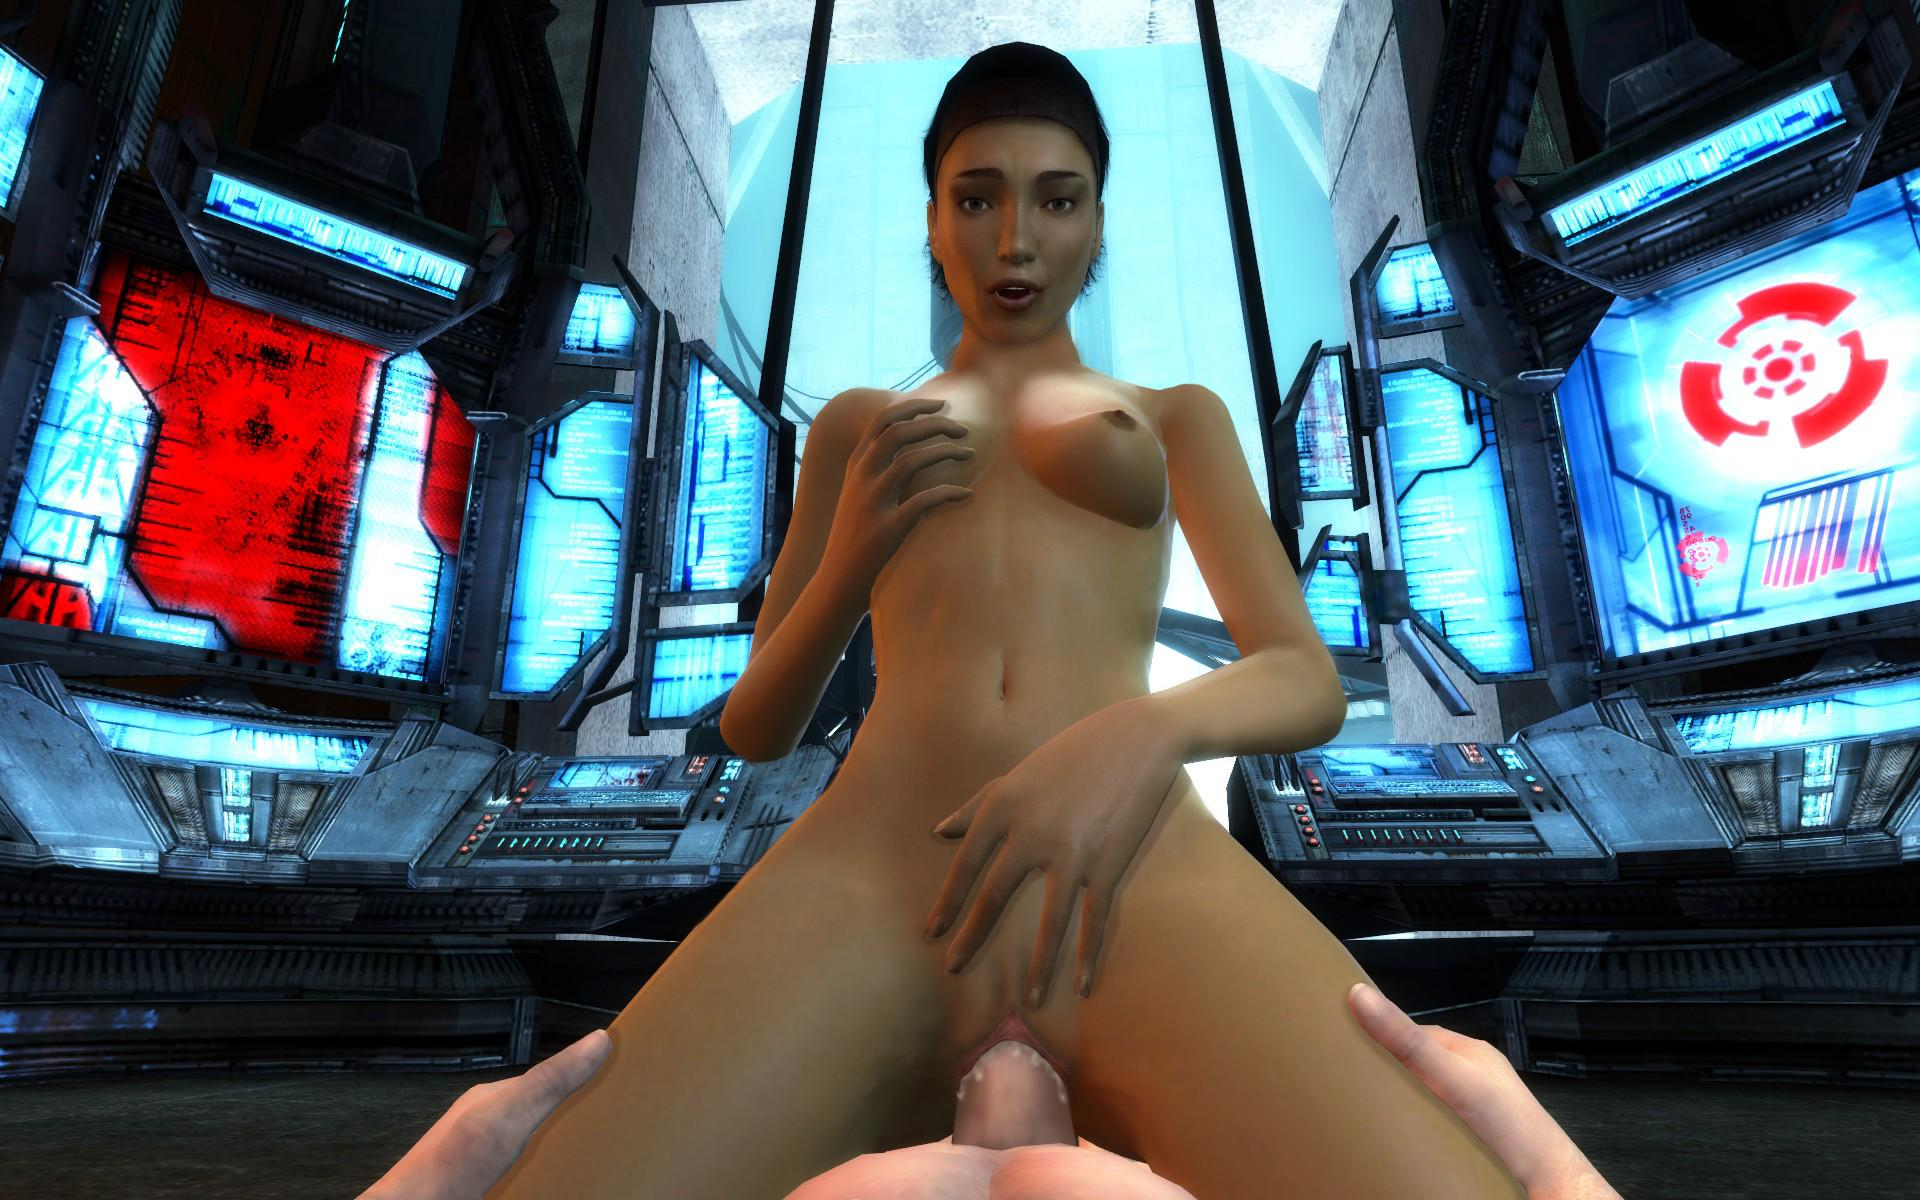 Alex from half life sex nudes video